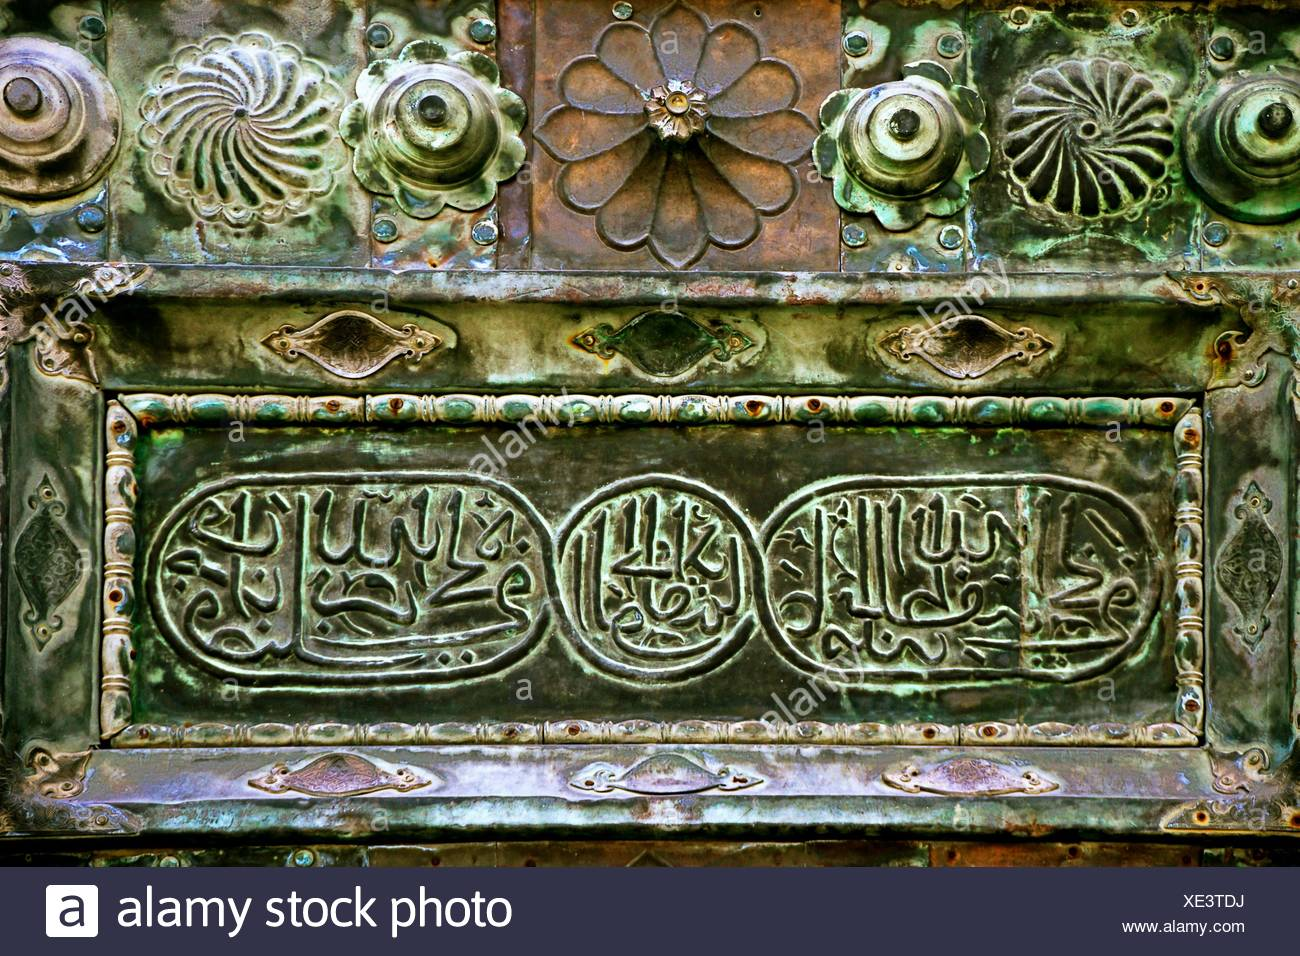 Syria, Damascus, detail of the entrance door of the Great Umayyad Mosque - Stock Image